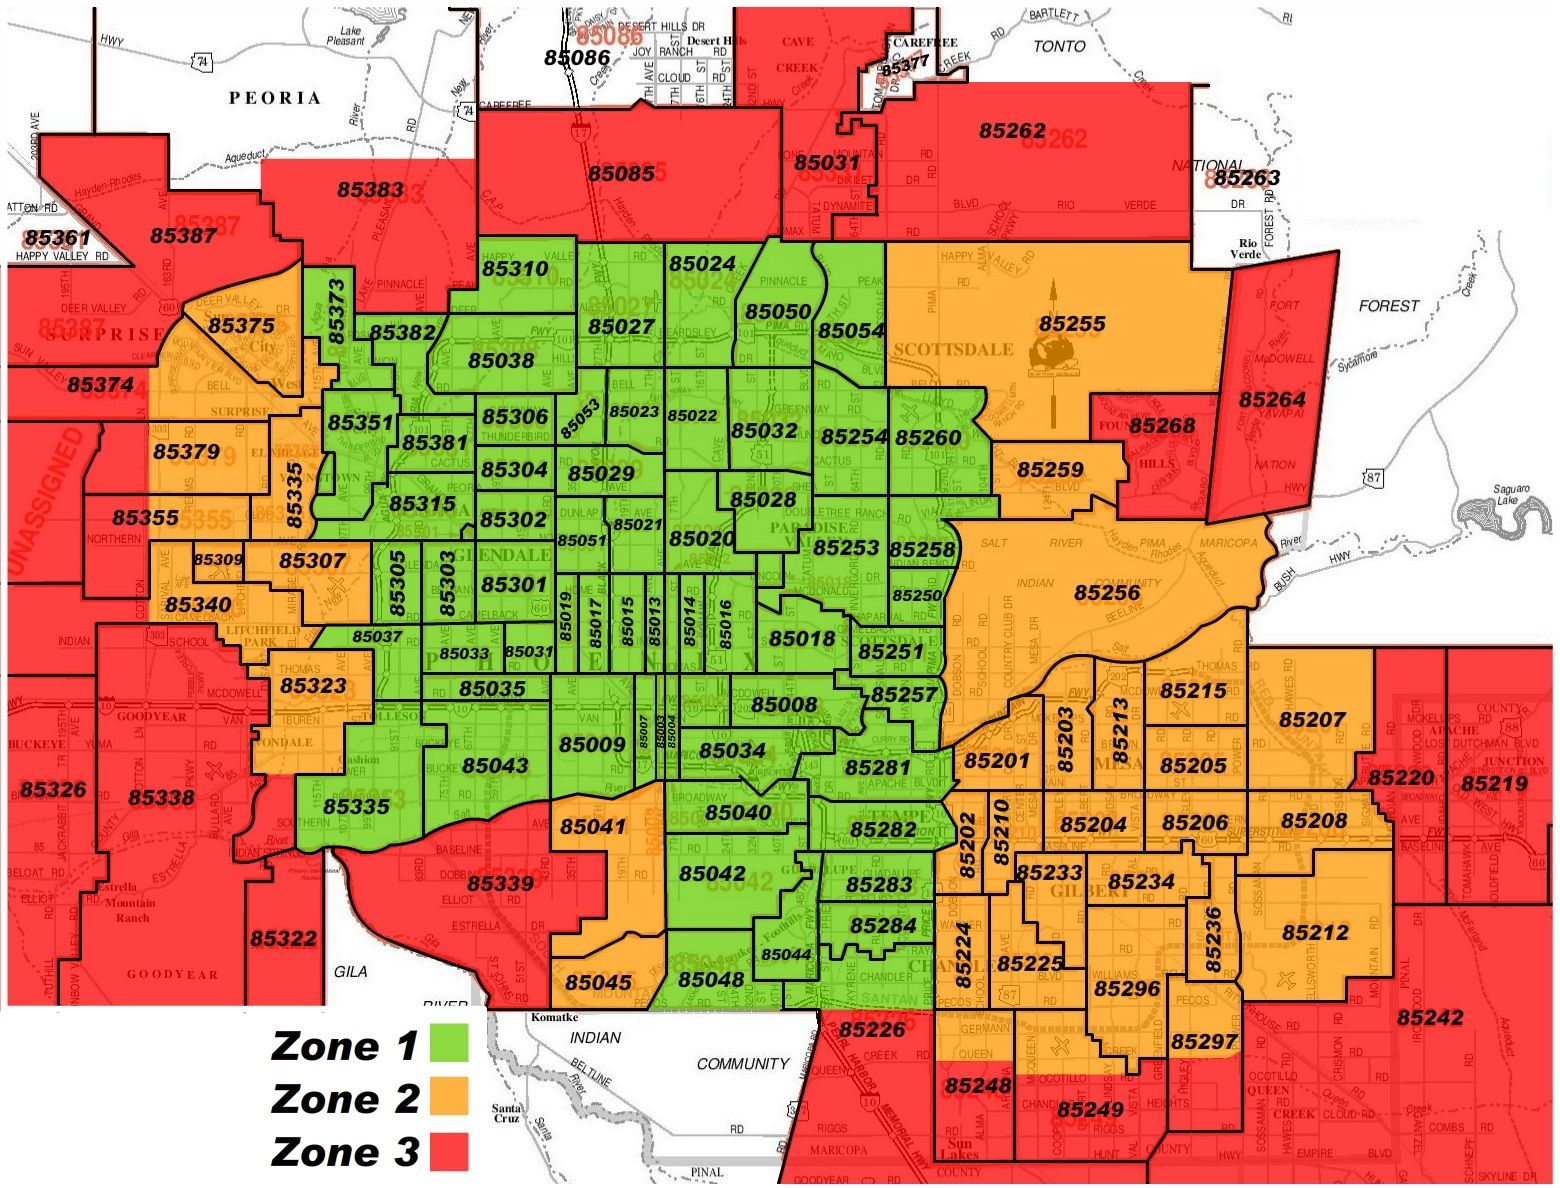 sedona az zip code map Maricopa County Zip Code Map Area Rate Map Metro Map Zip Code